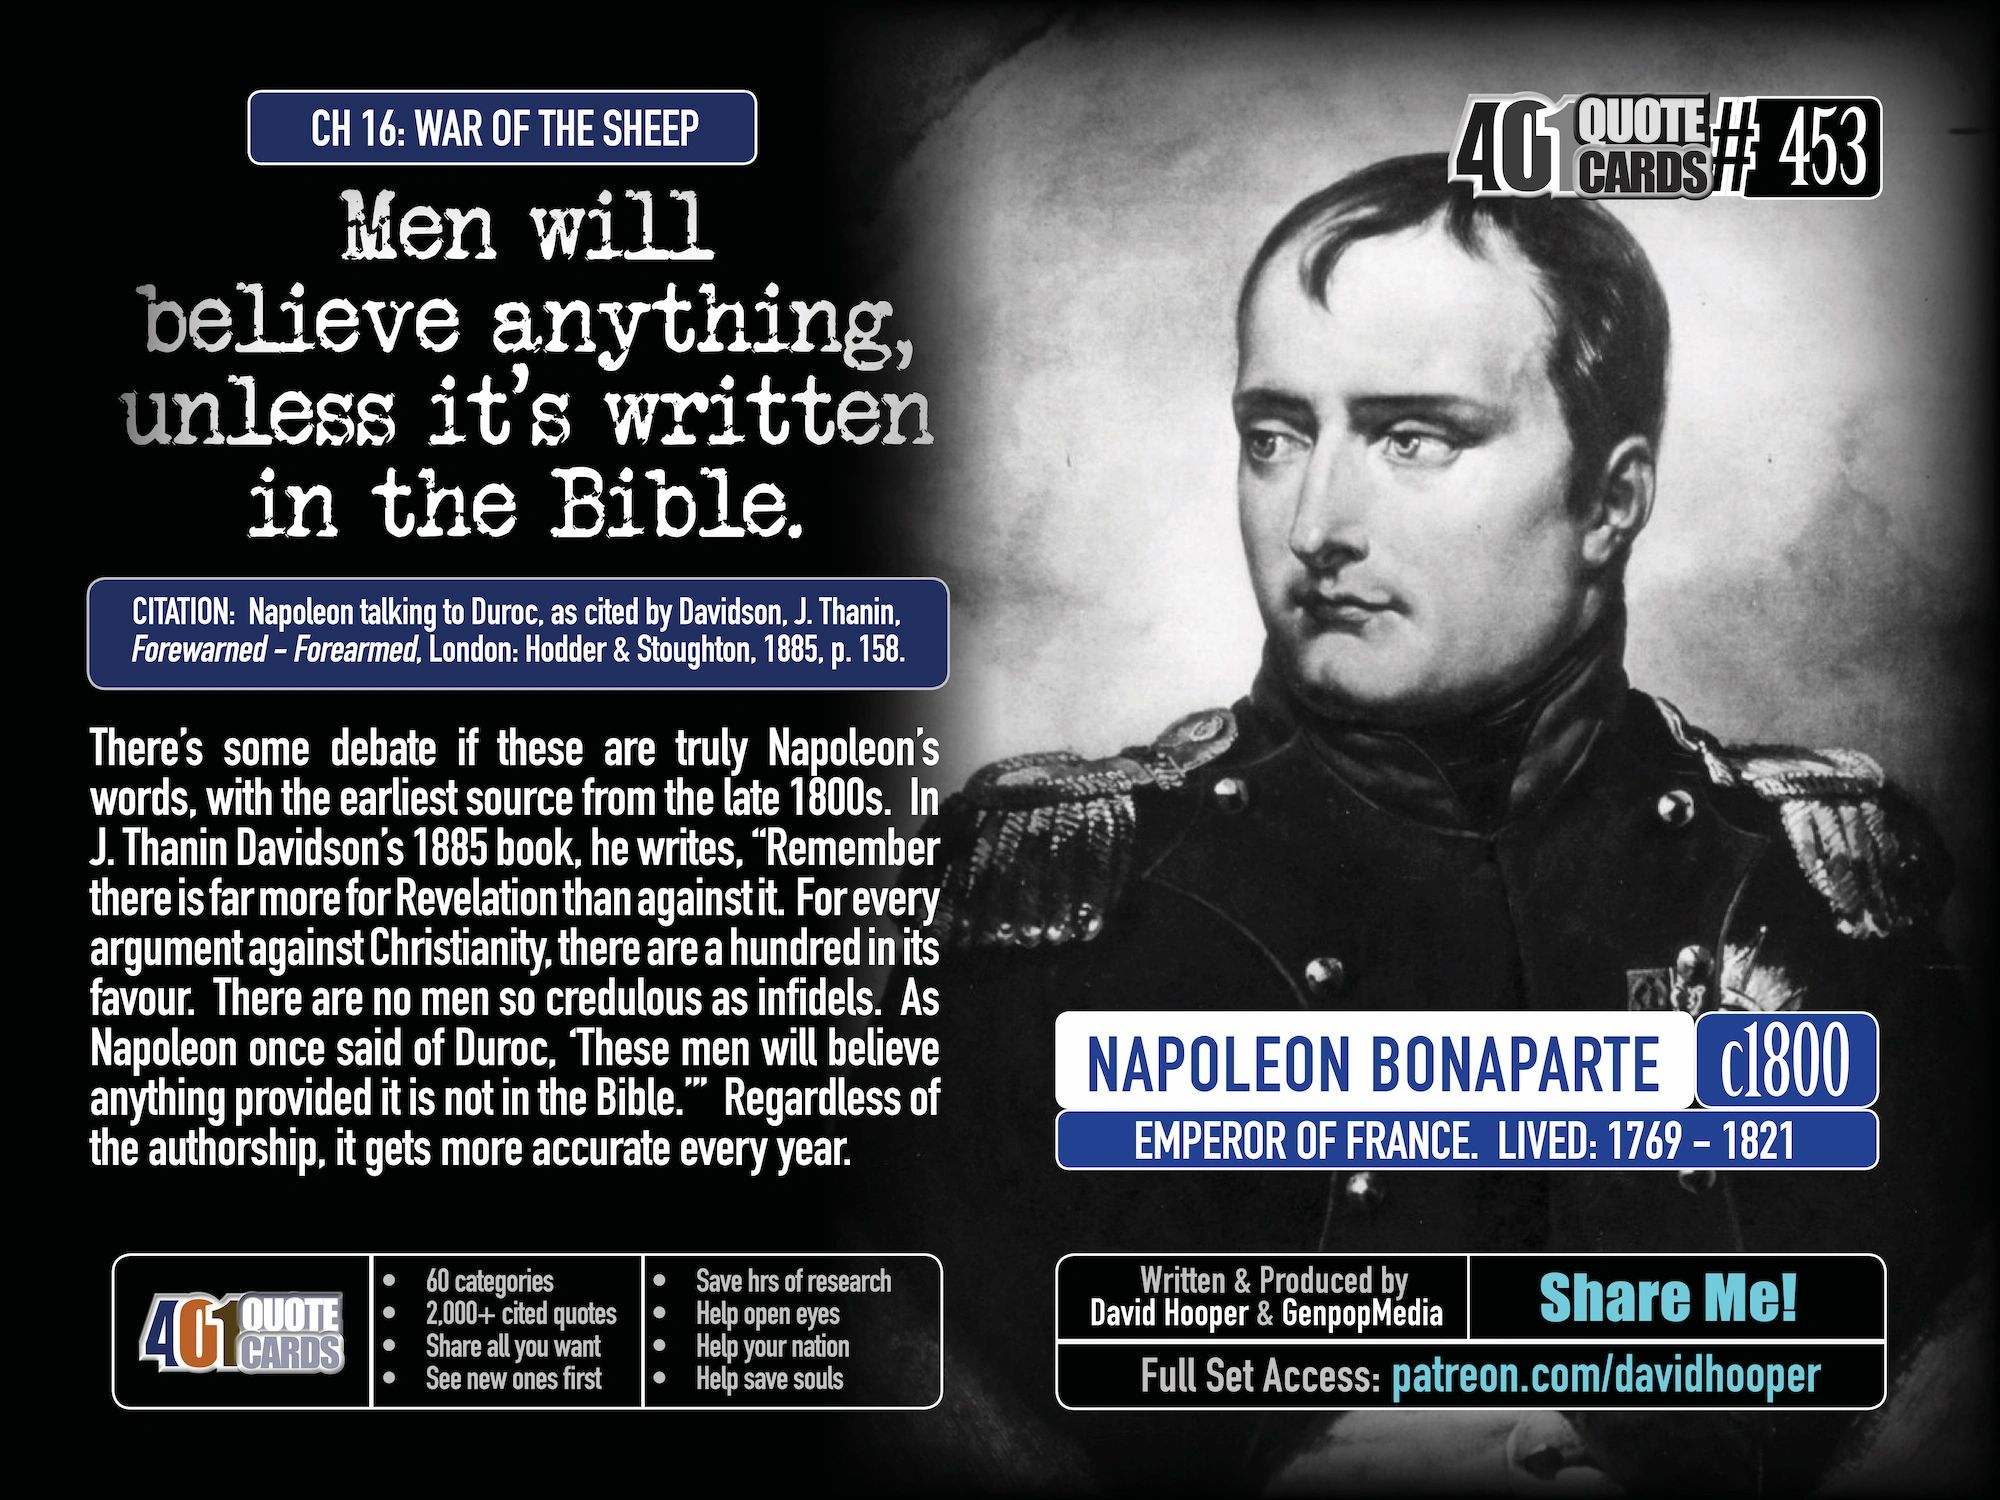 Napoleon Quote: Men will believe anything, unless it's written in the Bible. 401 Quotes. Genpopmedia